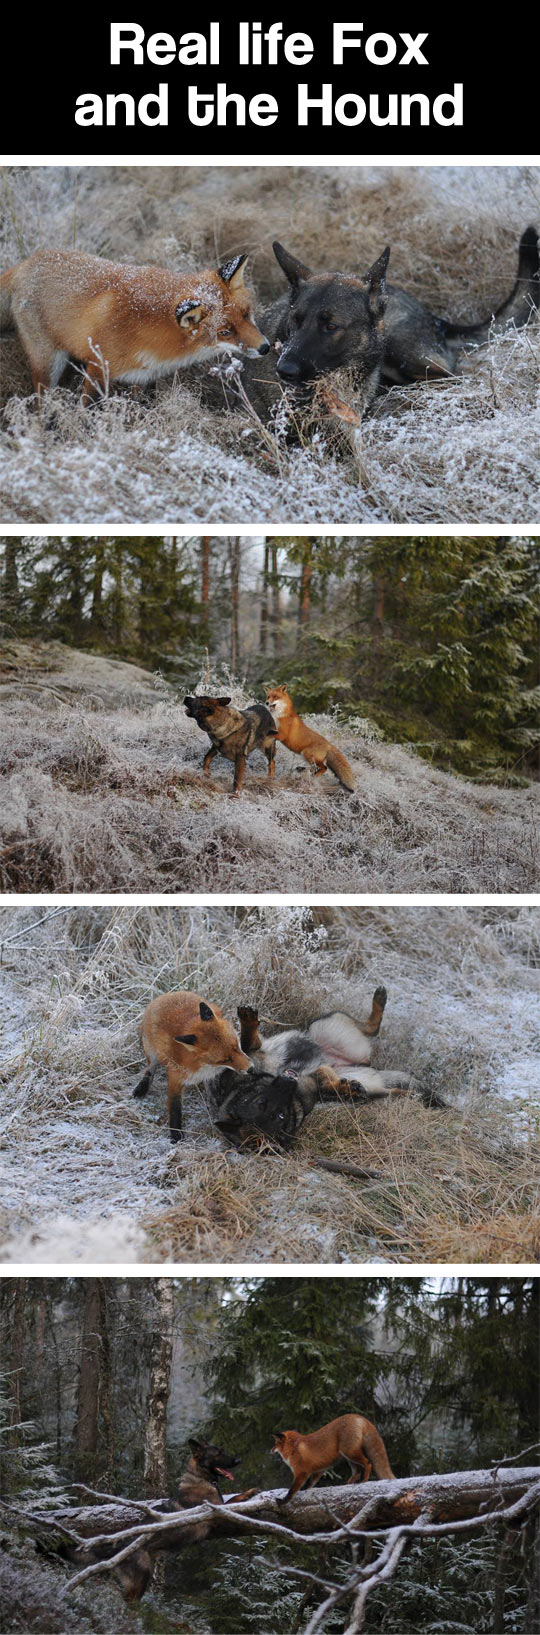 The real Fox and the Hound...